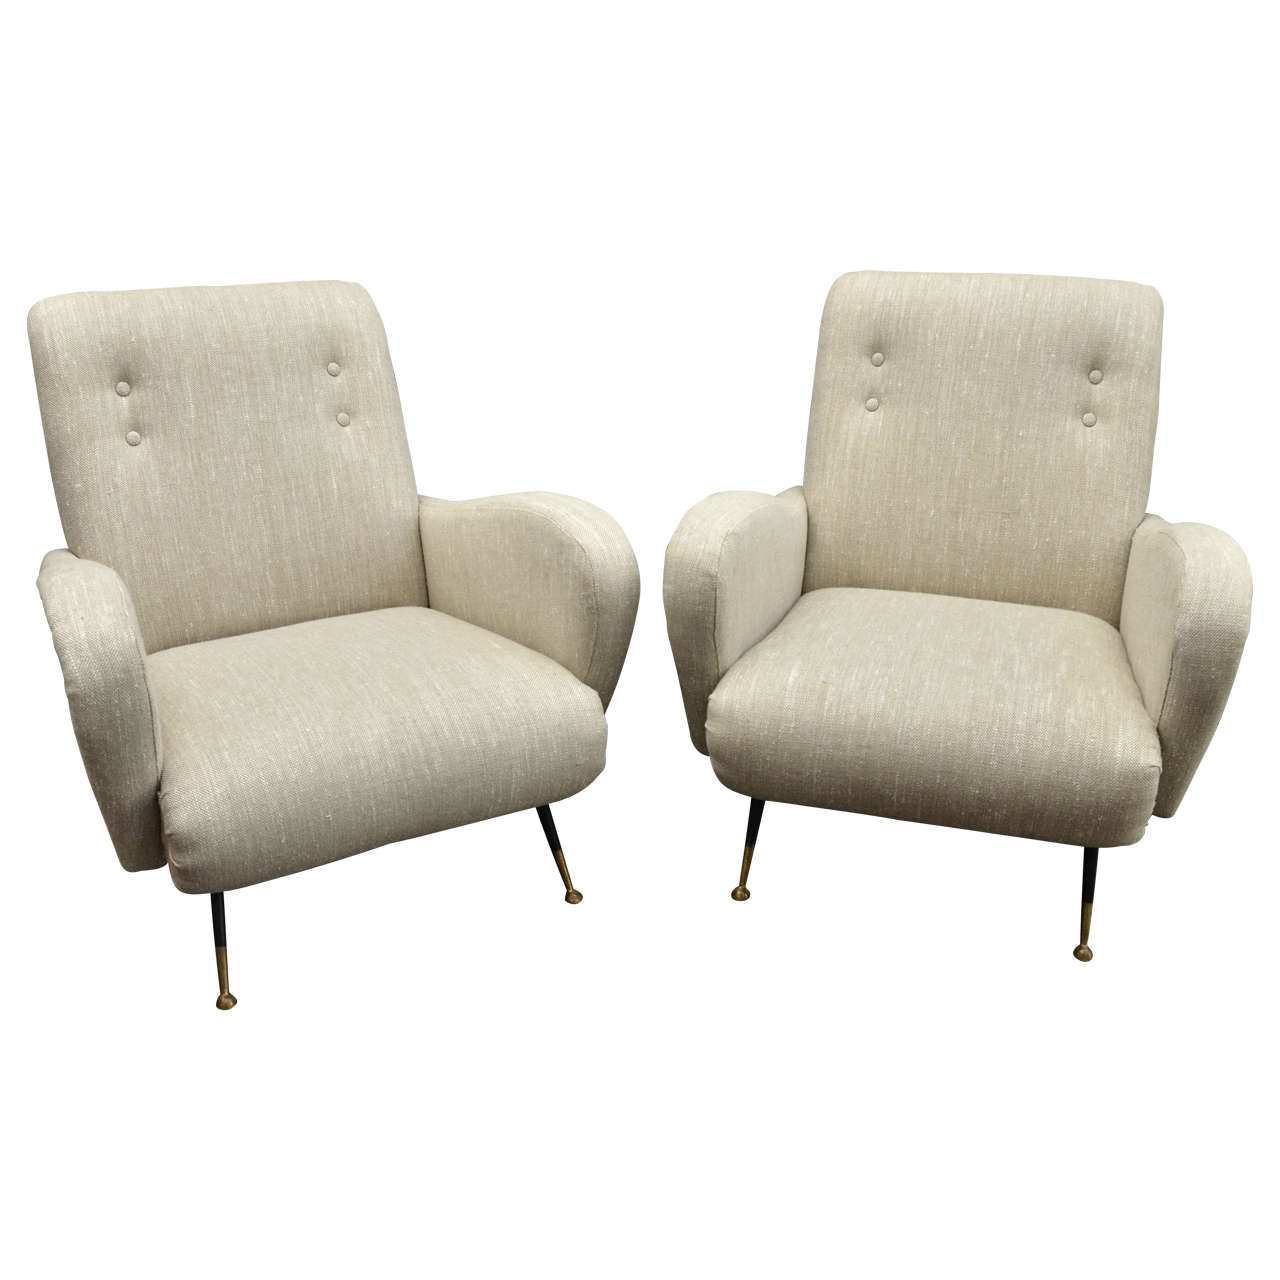 Pair Of Gio Ponti Style Club Chairs At 1stdibs